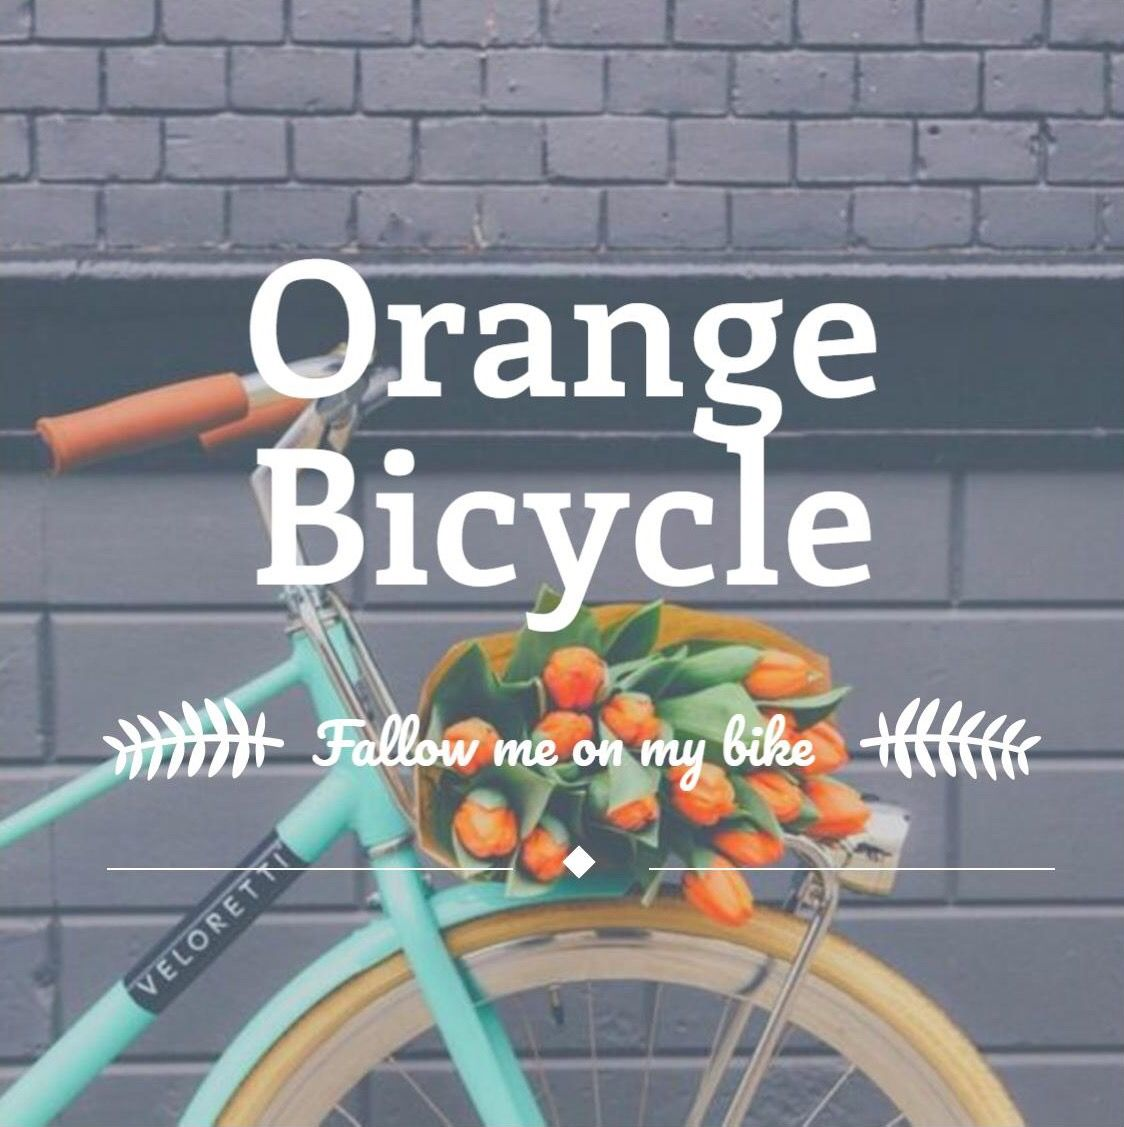 Follow me on Istagram -Orangebicycle1988.  Everyday I will explore my country the Netherlands🇱🇺. Learn about our historical buildings, traditions and enjoy our beautiful nature.